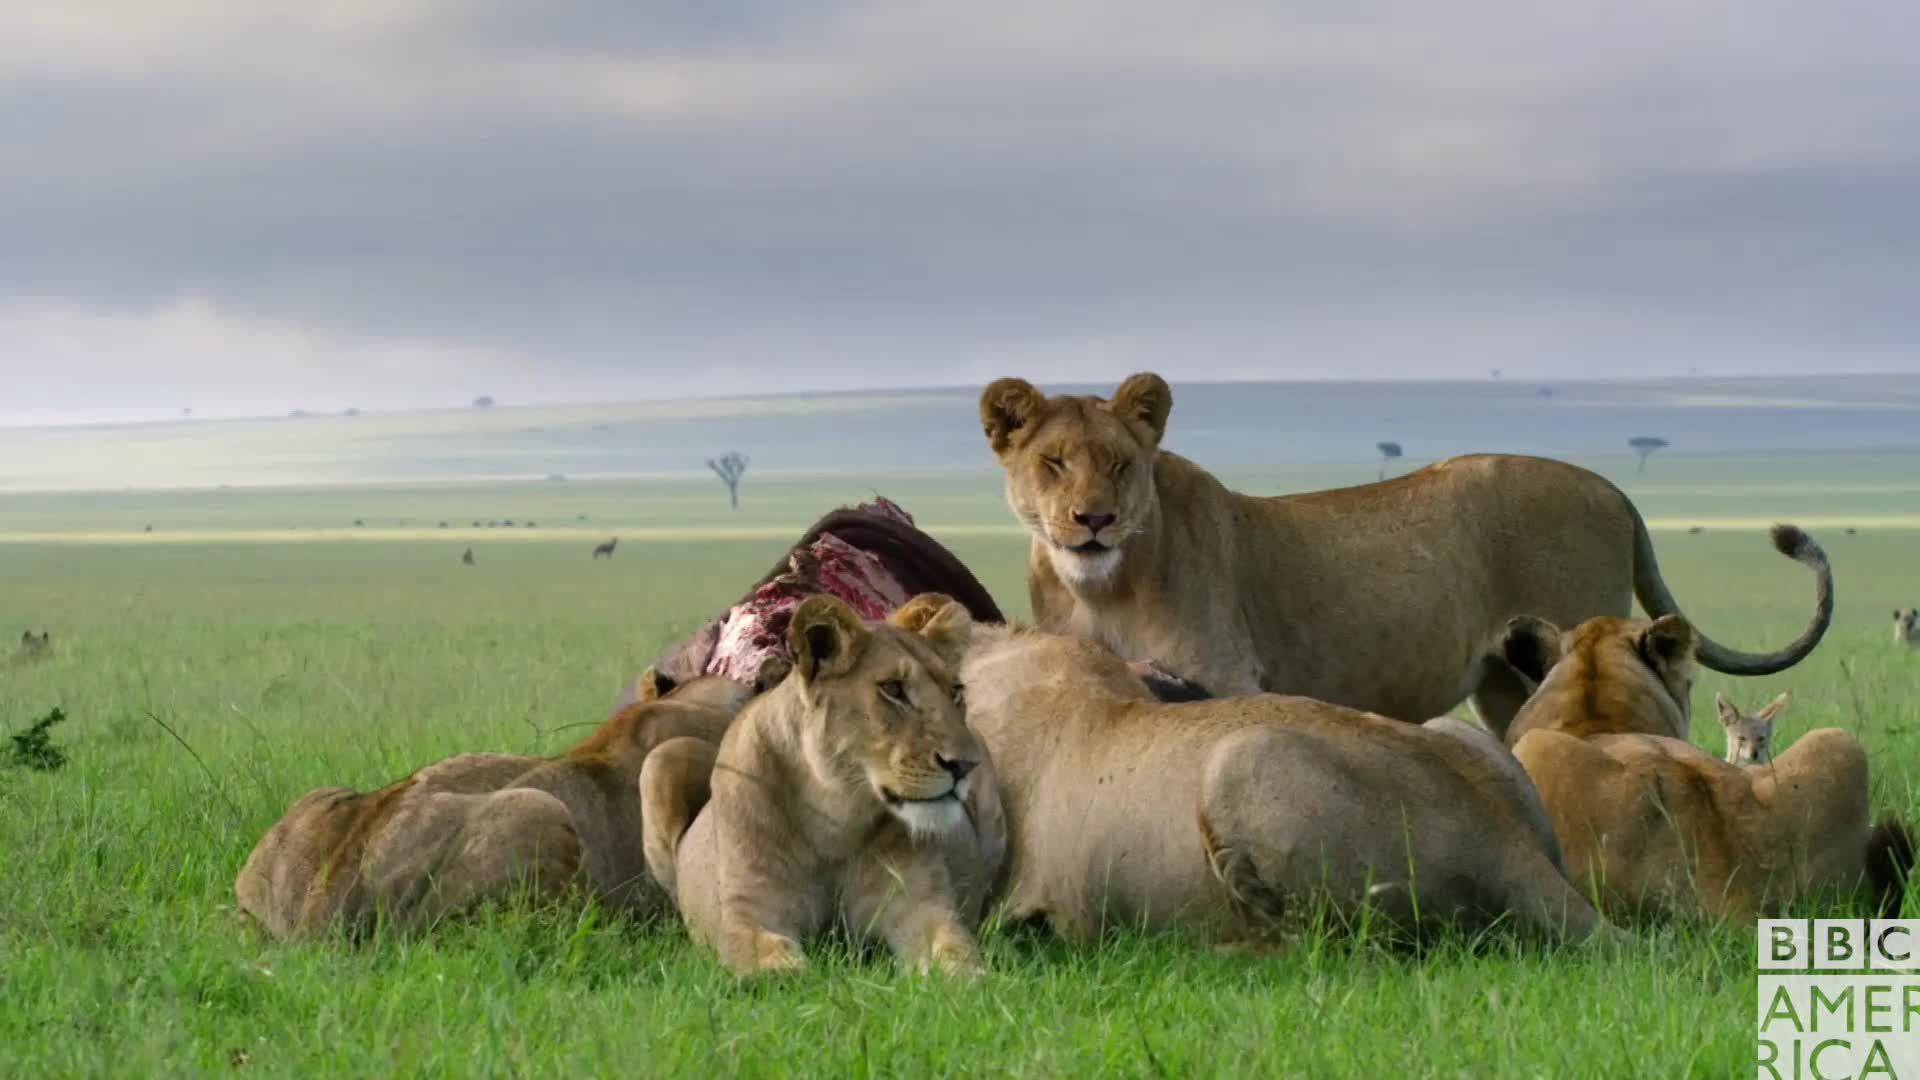 animal, animals, bbc america, bbc america: dynasties, dinner, dynasties, food, hungry, lion, lions, squad, squad goals, Dynasties Family Dinner GIFs